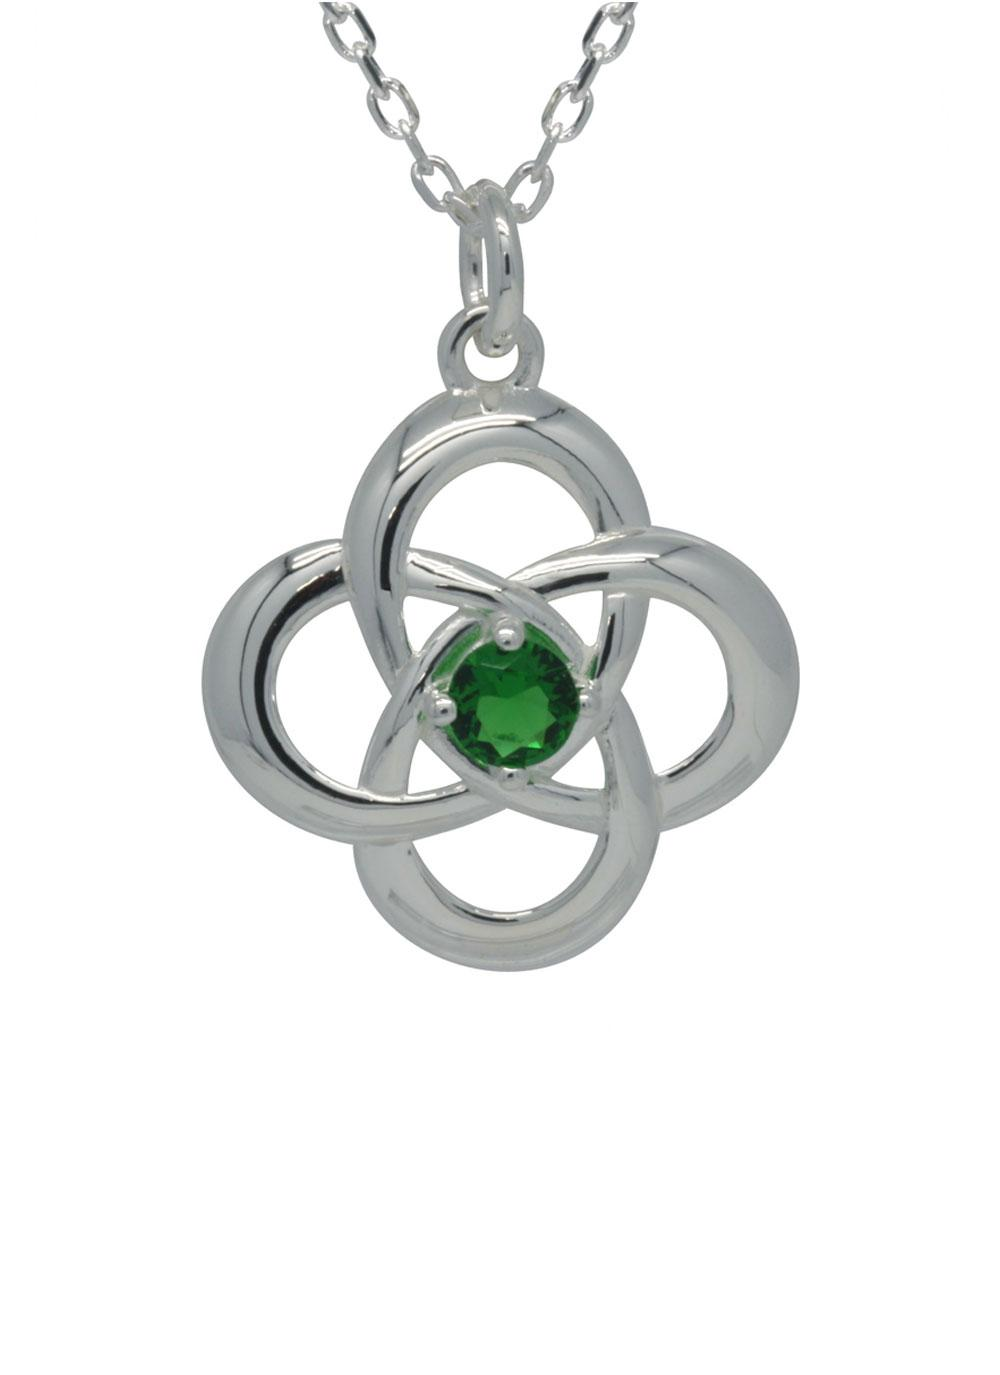 Sterling silver celtic love knot pendant blarney sterling silver celtic love knot pendant aloadofball Image collections